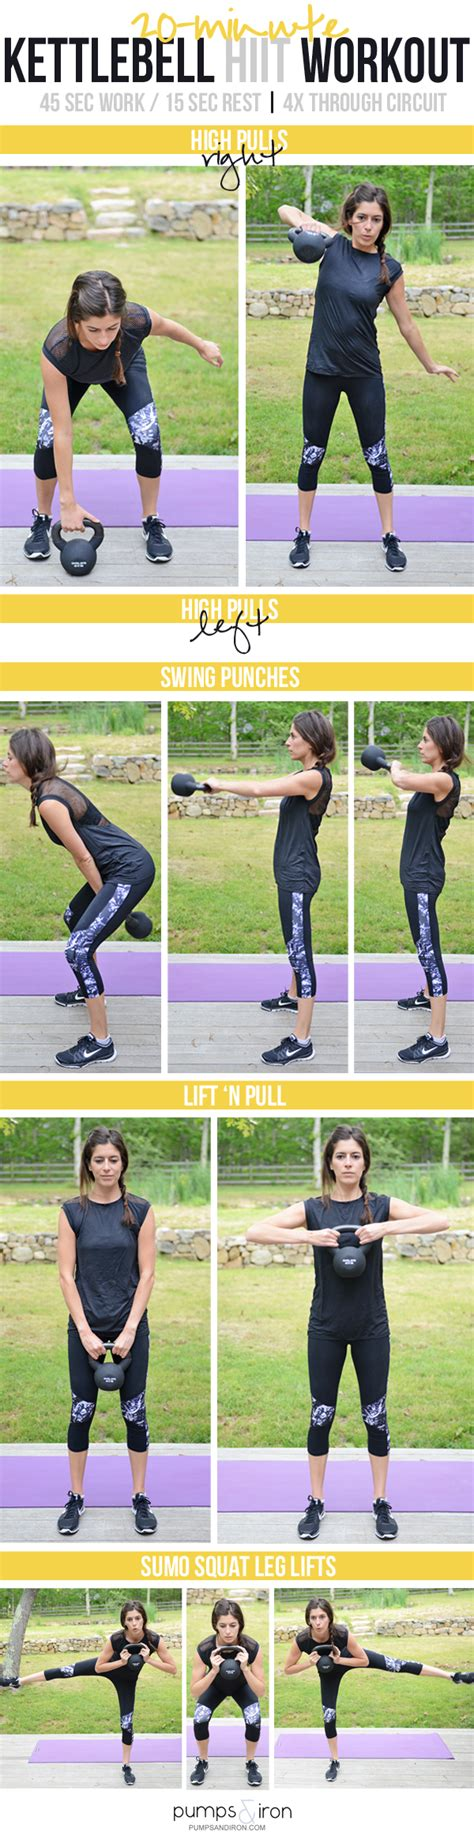 hiit kettlebell workout resistance warm band workouts minute exercises walking body fitness program bands basic iron training trening weight fat